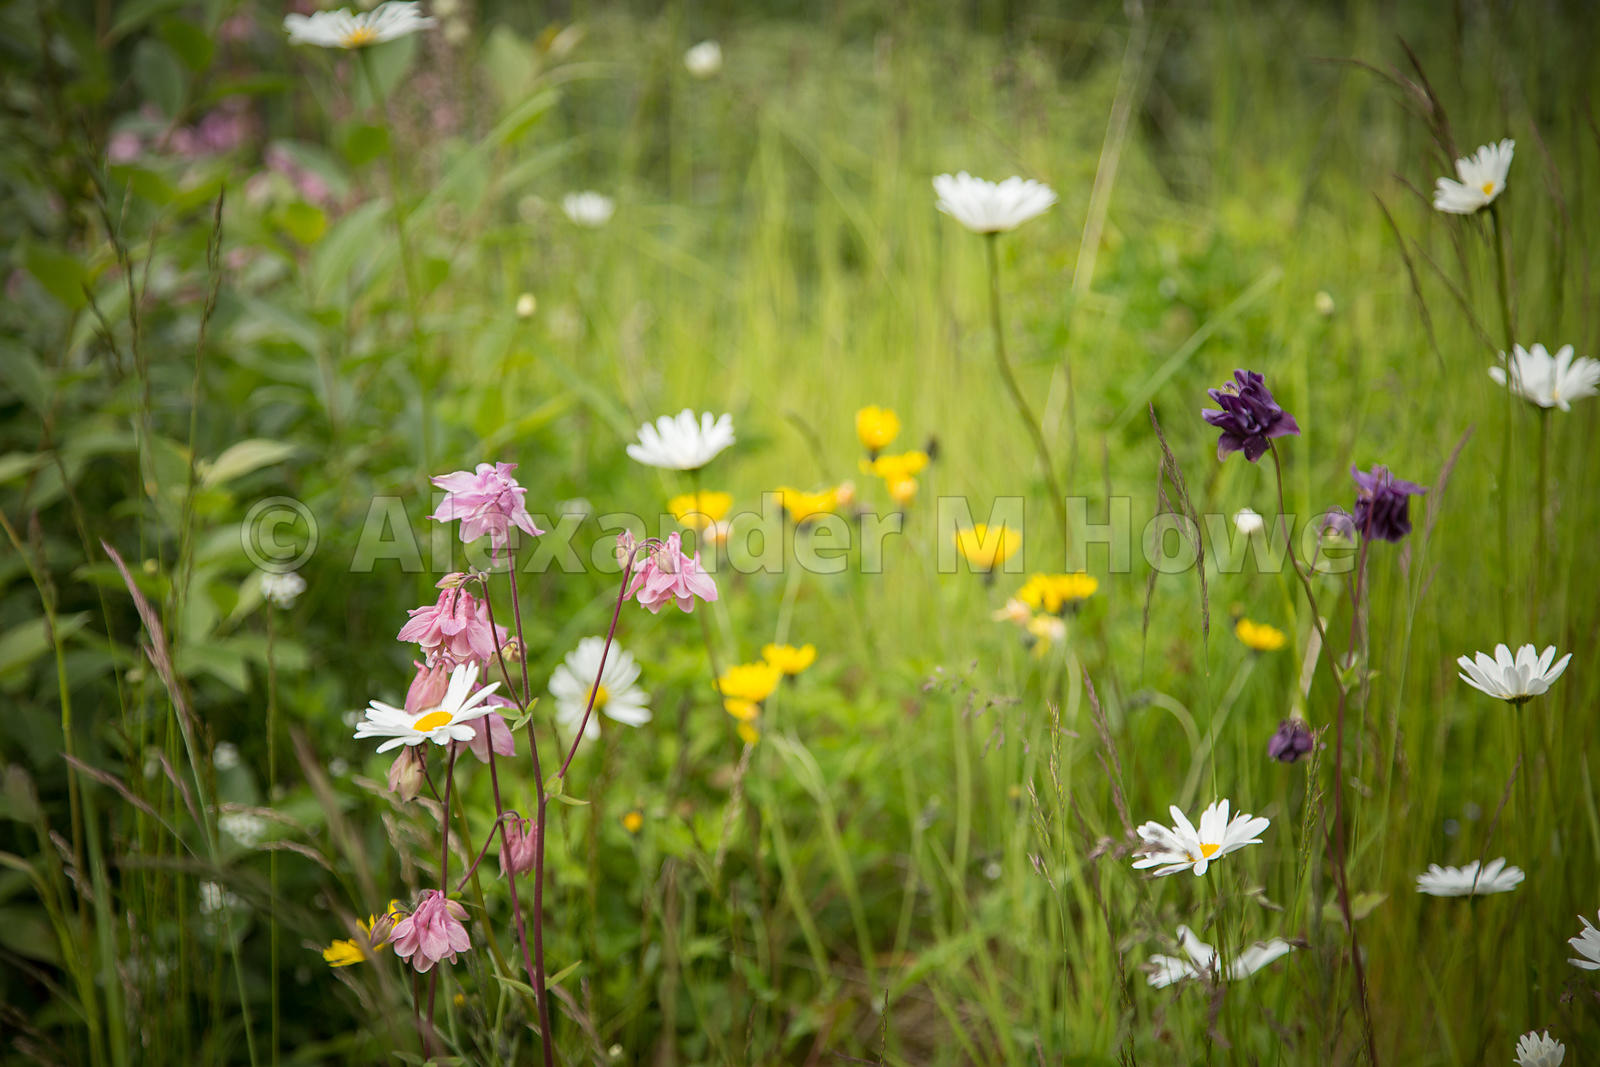 Beautiful WIld Flowers in Grassland